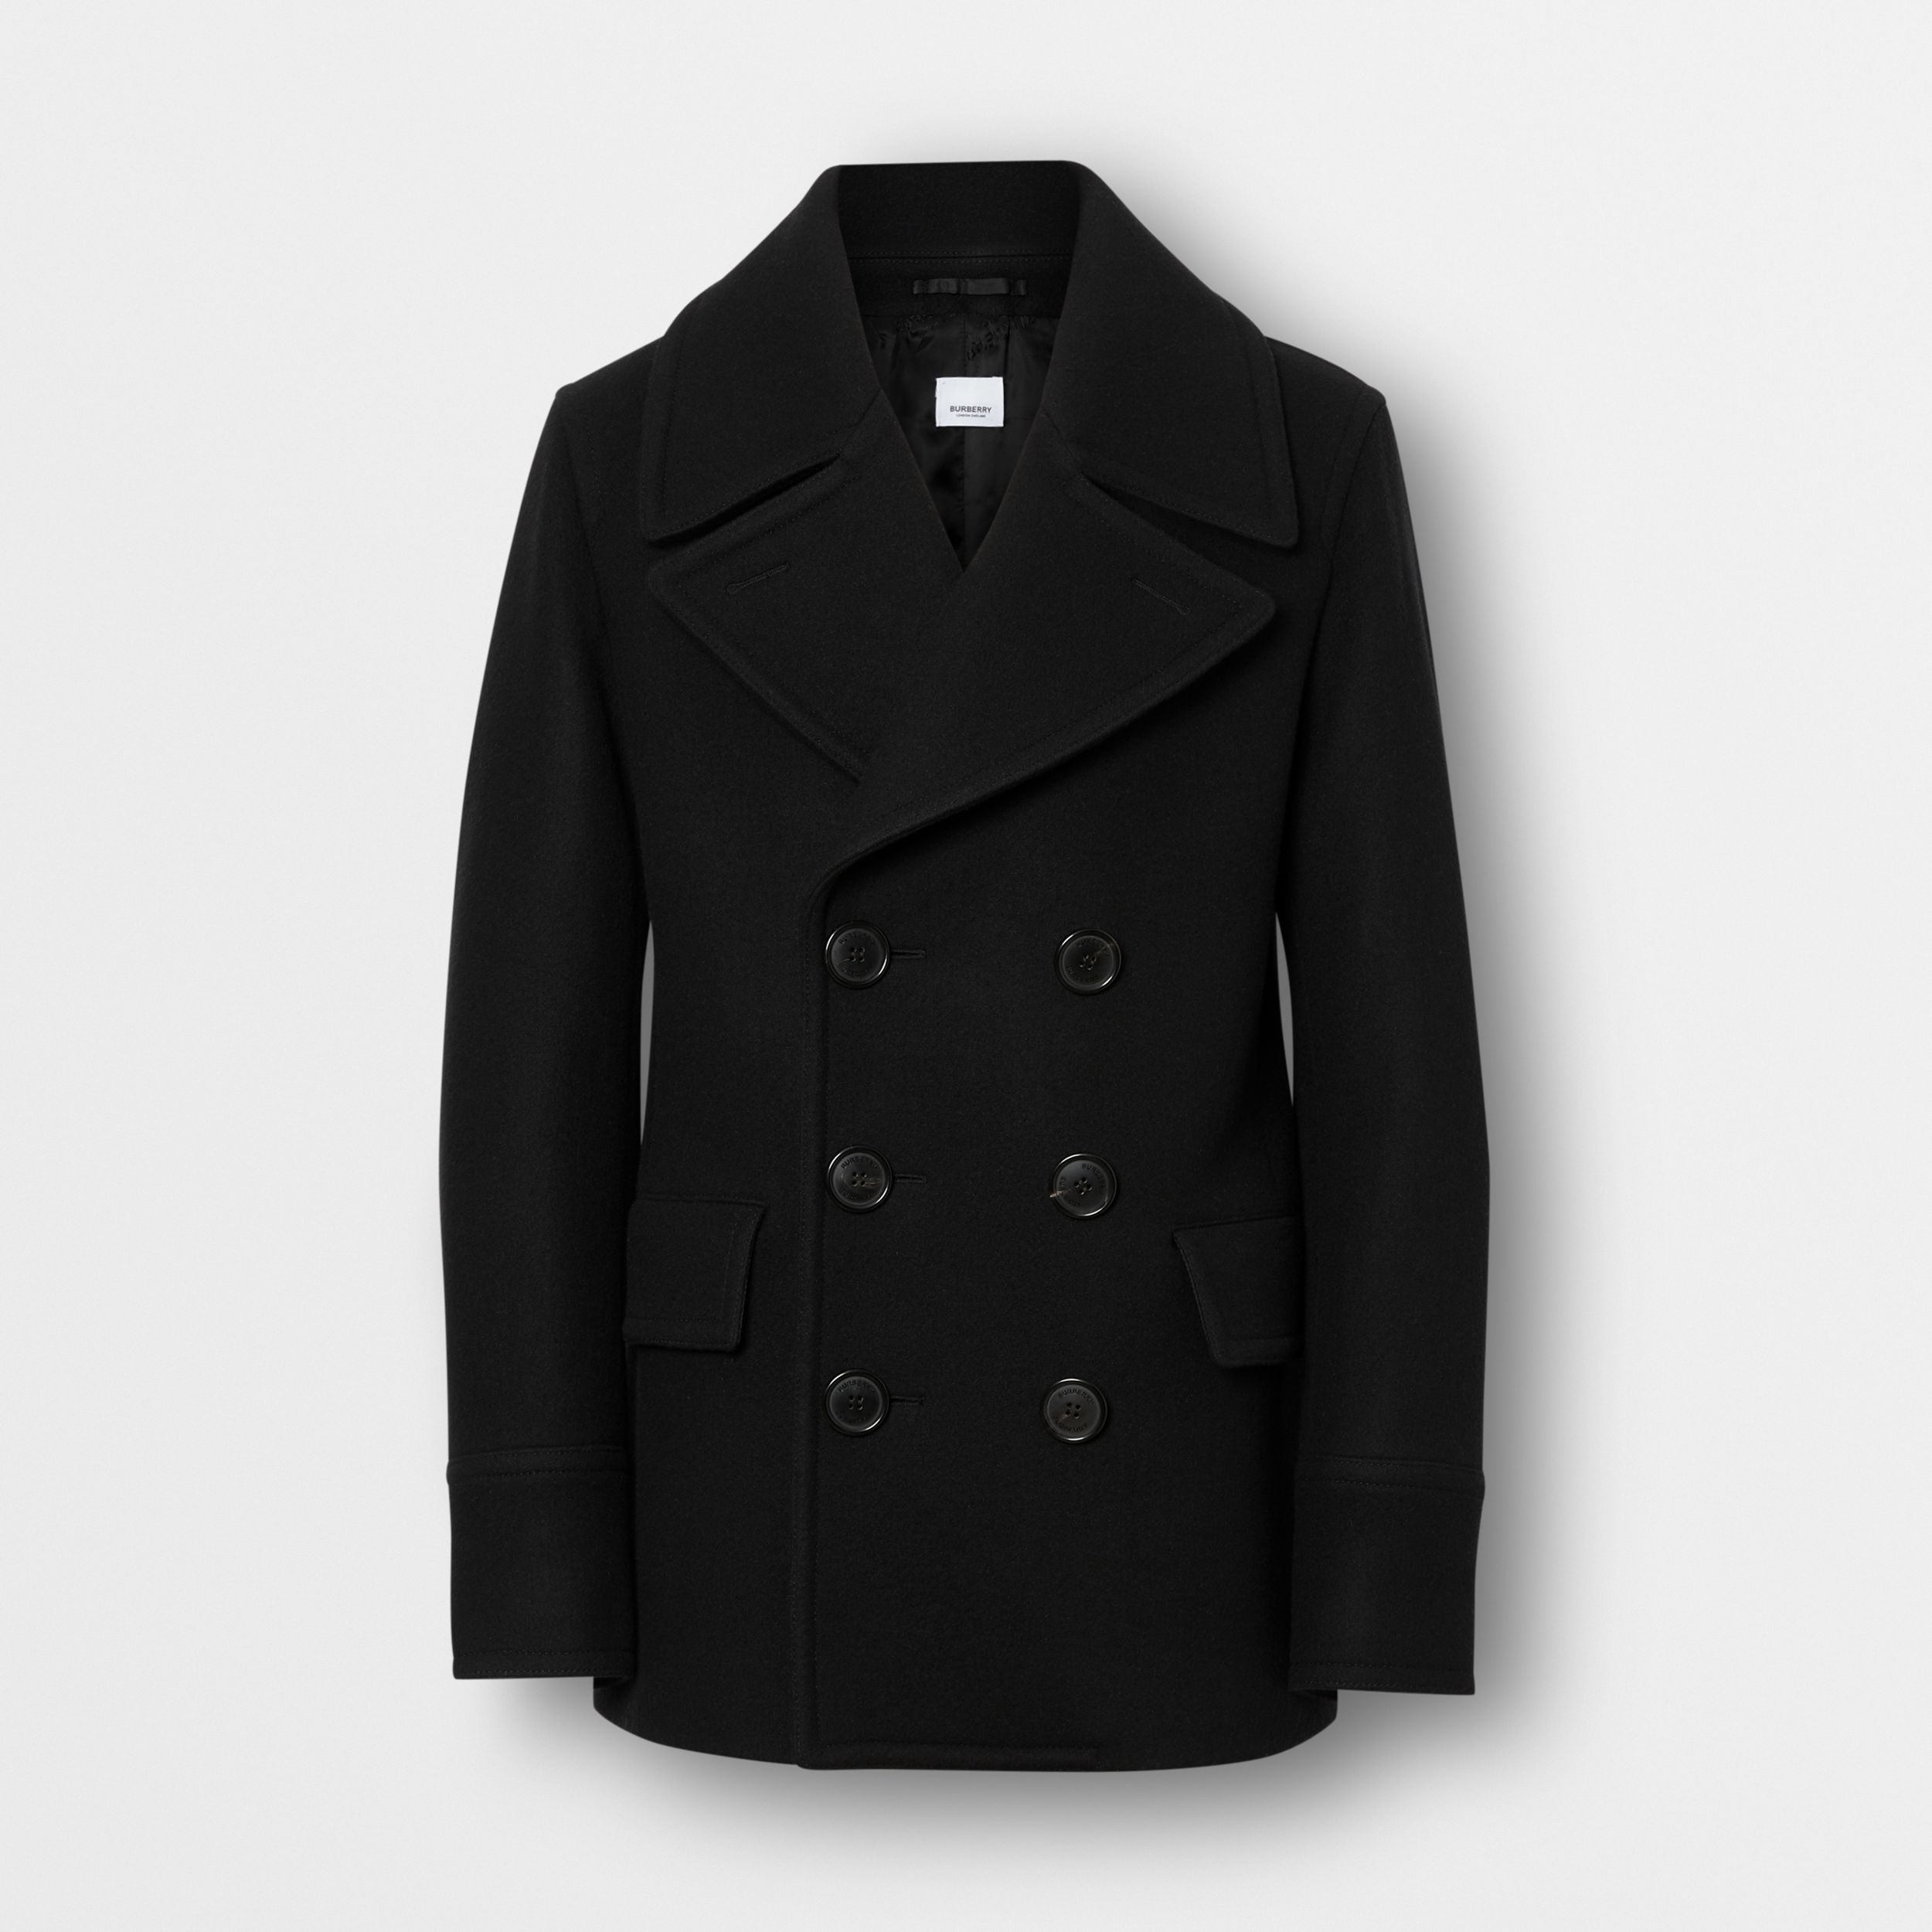 Wool Blend Pea Coat in Black - Men | Burberry - 4